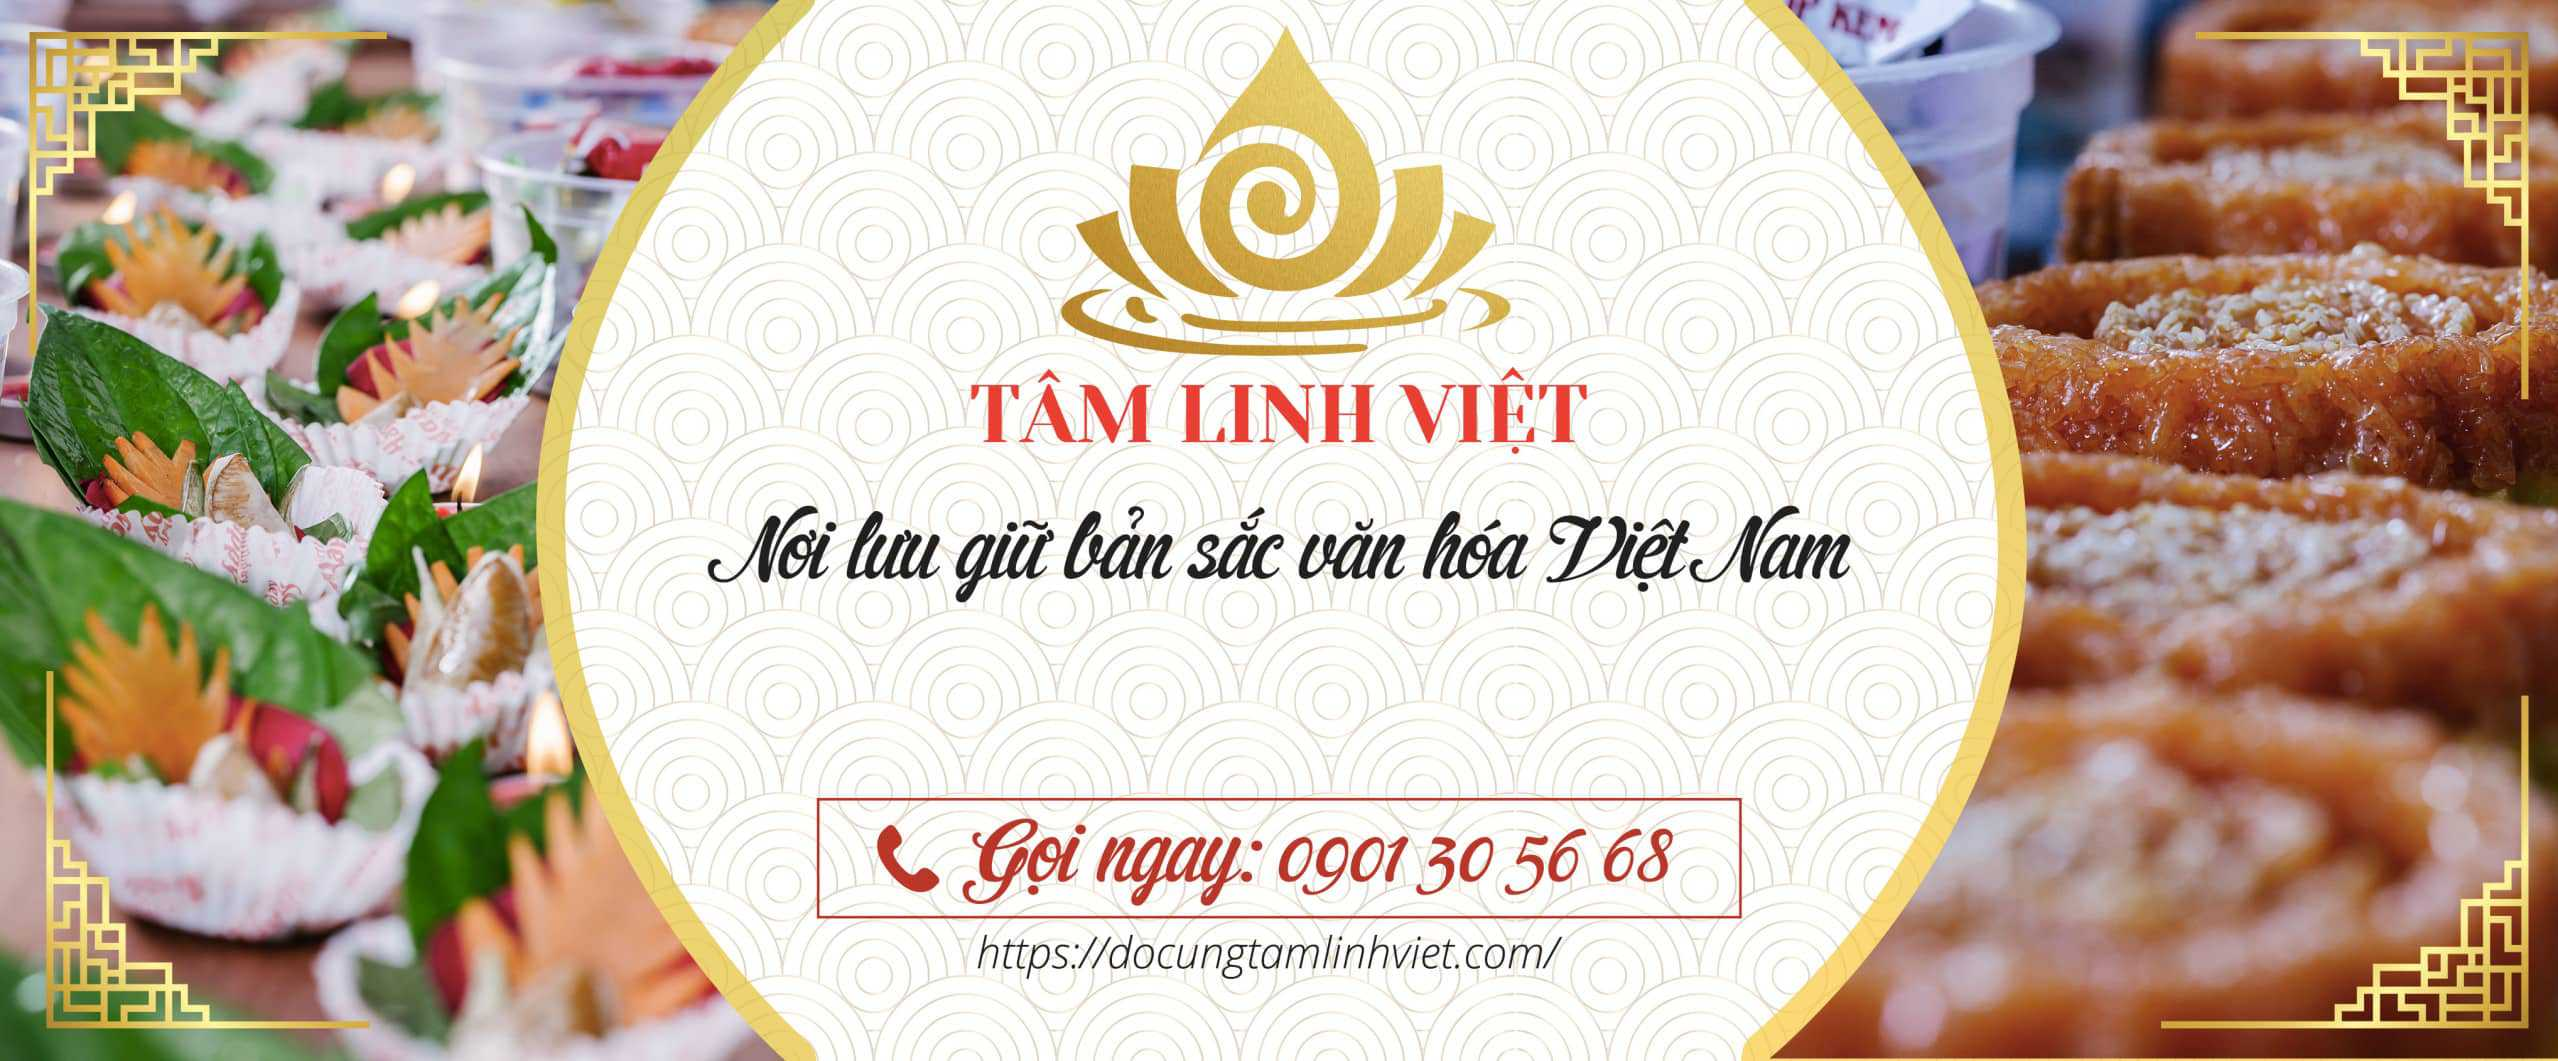 Banner Website docungtamlinhviet.com